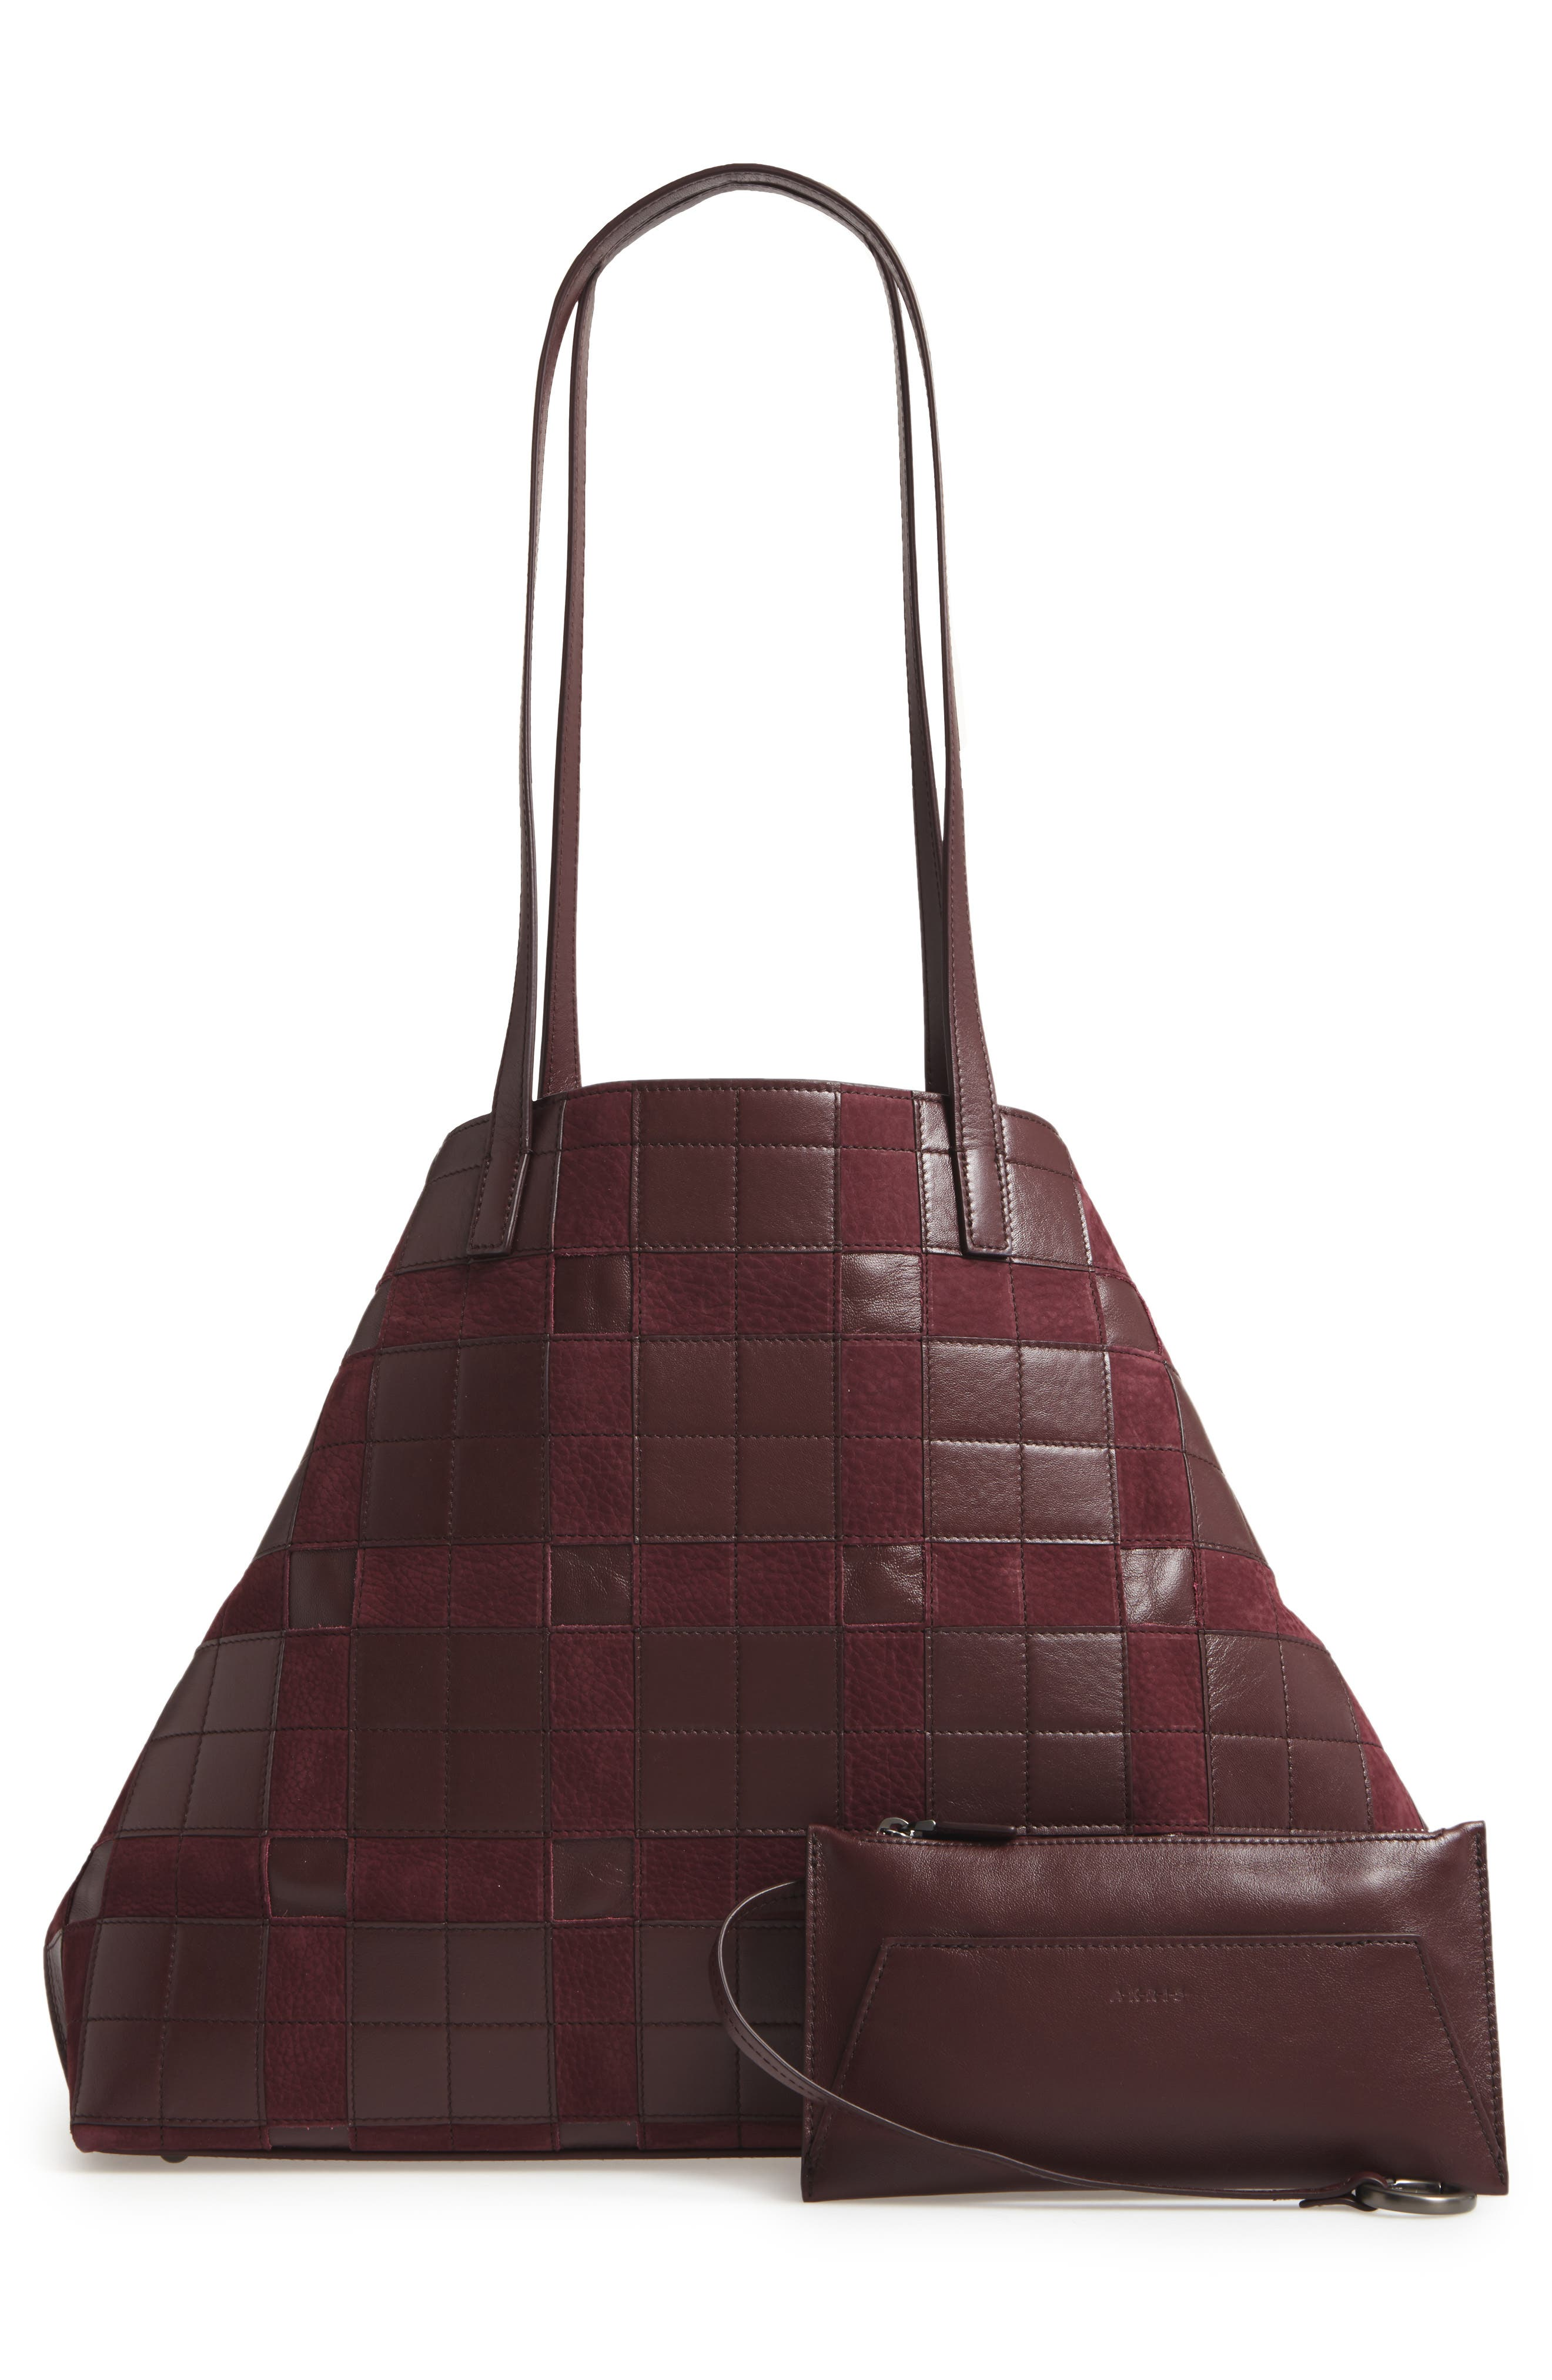 Medium AI Leather Shoulder Tote,                             Alternate thumbnail 2, color,                             Burgundy